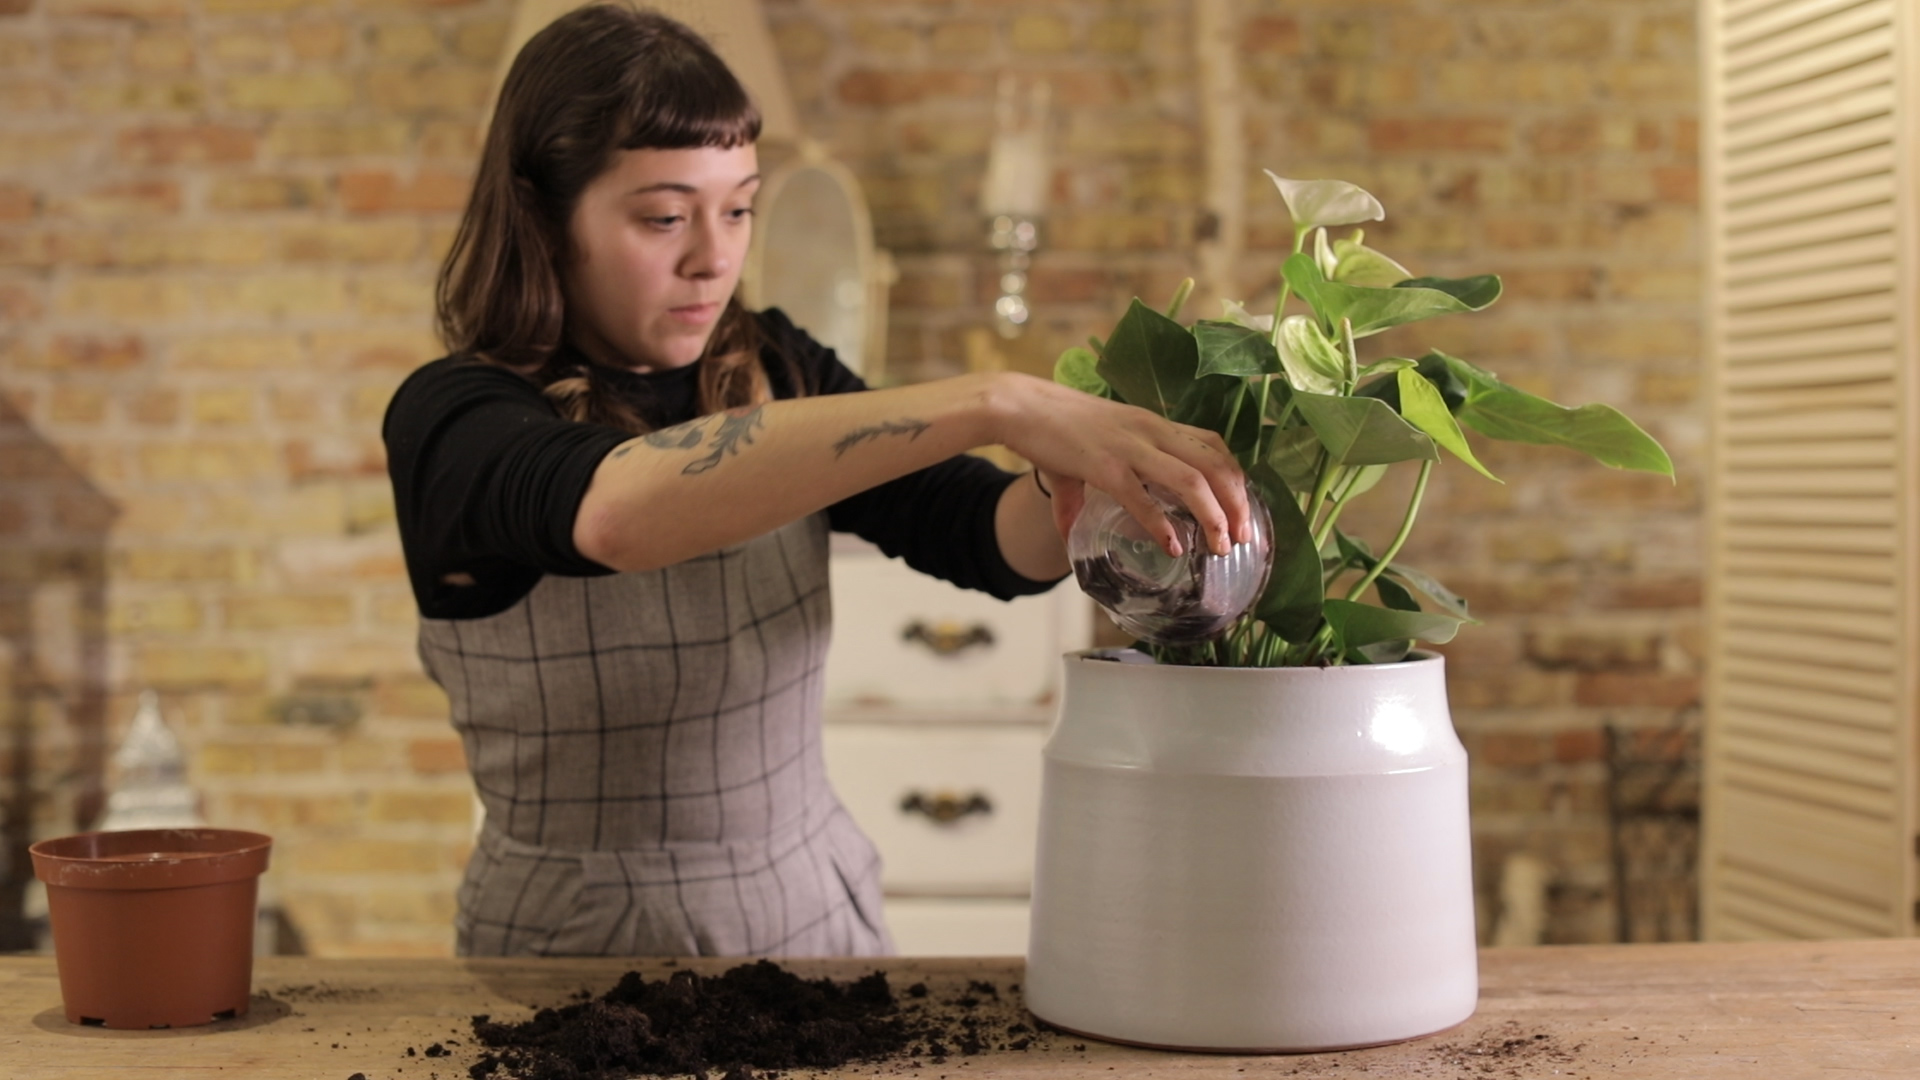 Arc Large Planter_Video Still 3